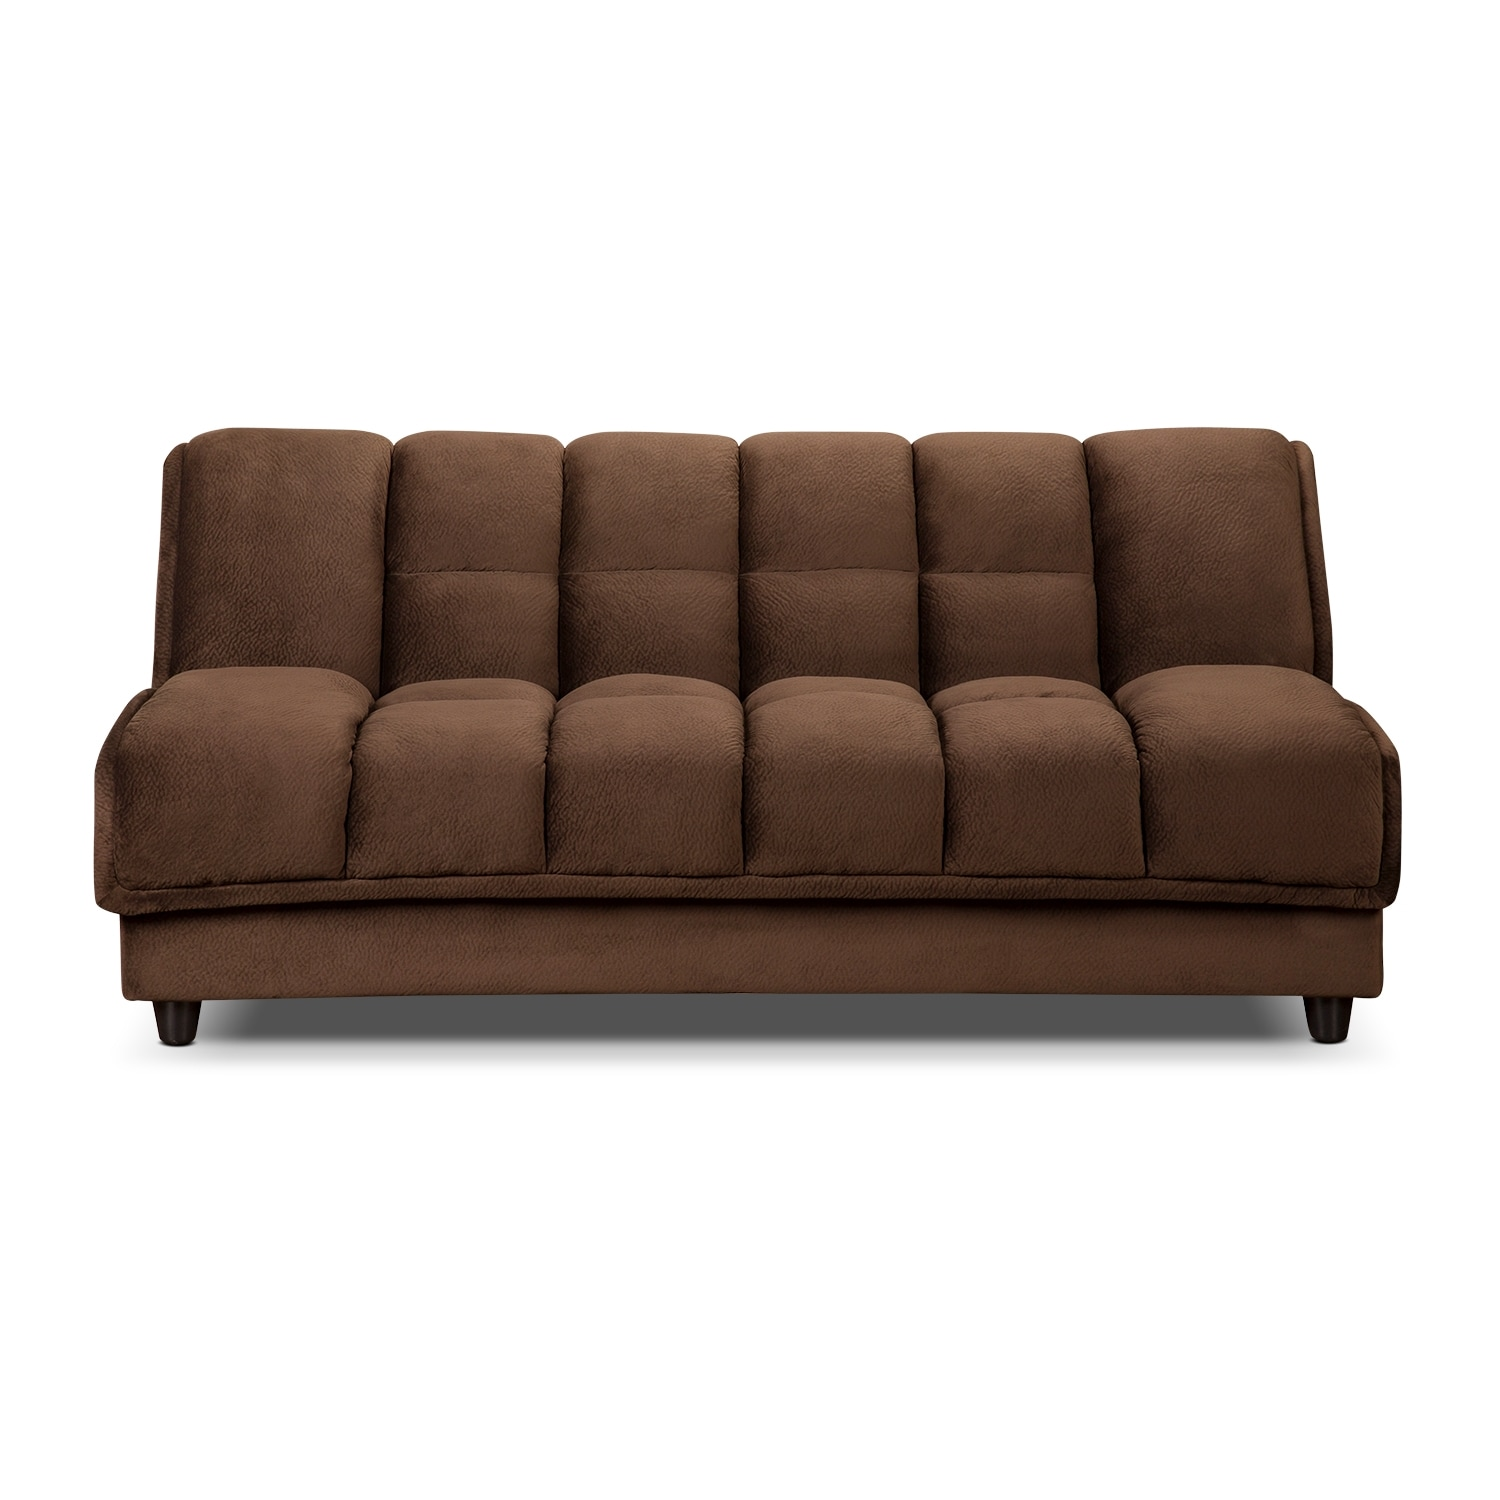 Bennett futon sofa bed espresso american signature for Signature furniture